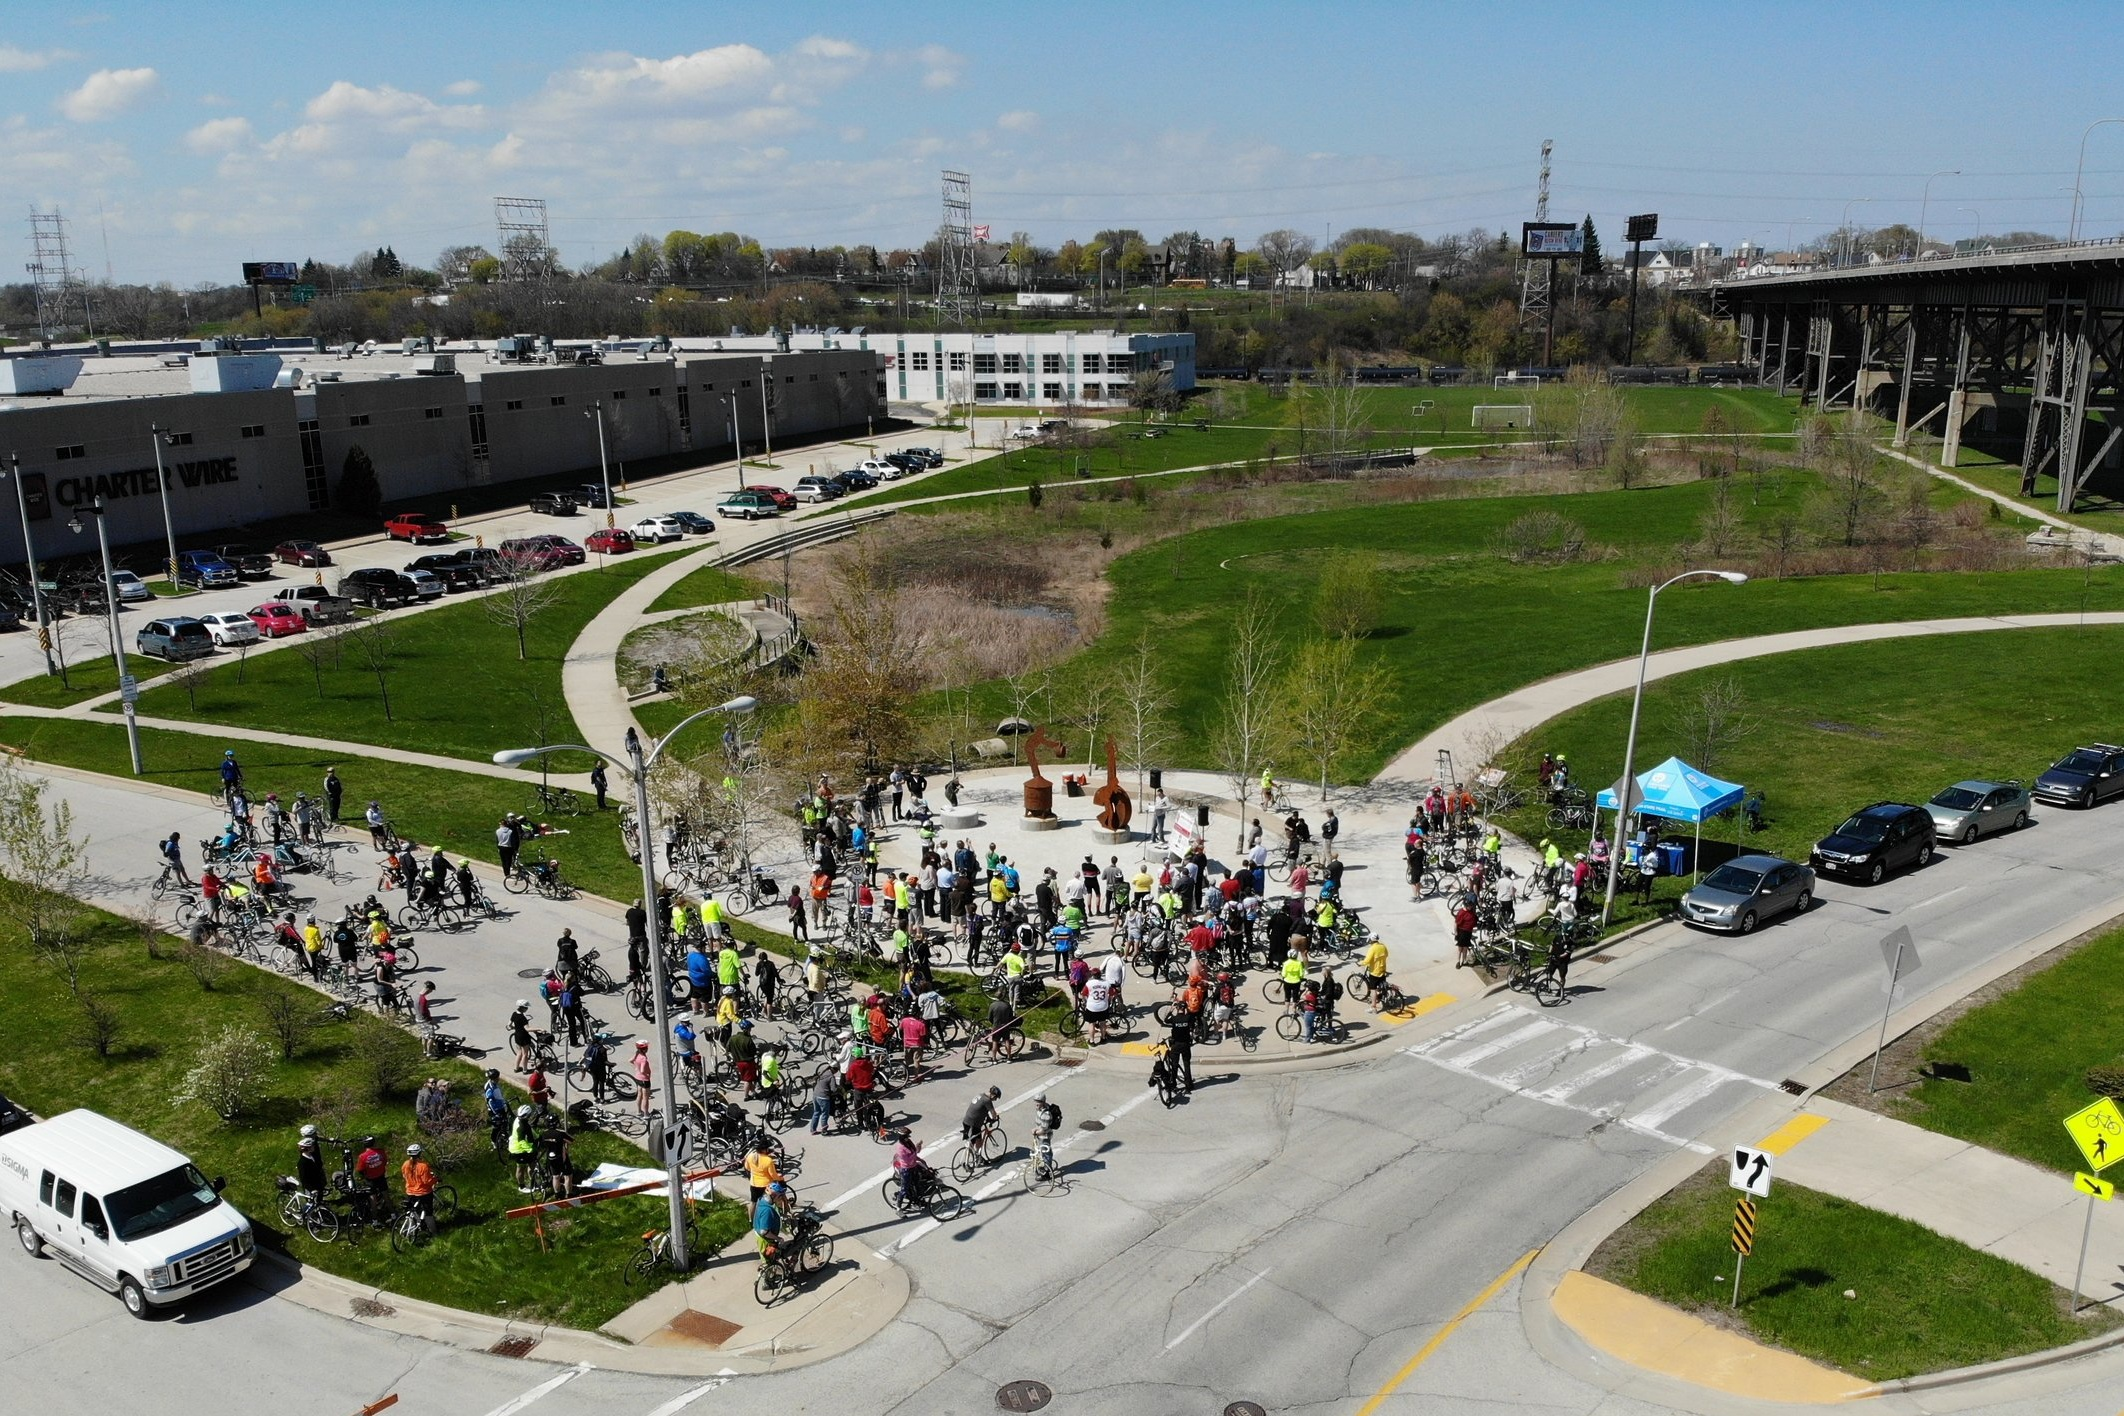 The monument will be located near the corner of West Canal Street and West Milwaukee Road where the Milwaukee Road Rail Shops' chimneys once stood. Now along the Hank Aaron State Trail, it is a highly visible area with hikers, joggers, cyclists, and between 6,000 to 7,700 cars passing by daily. Photo: Chris Maertz